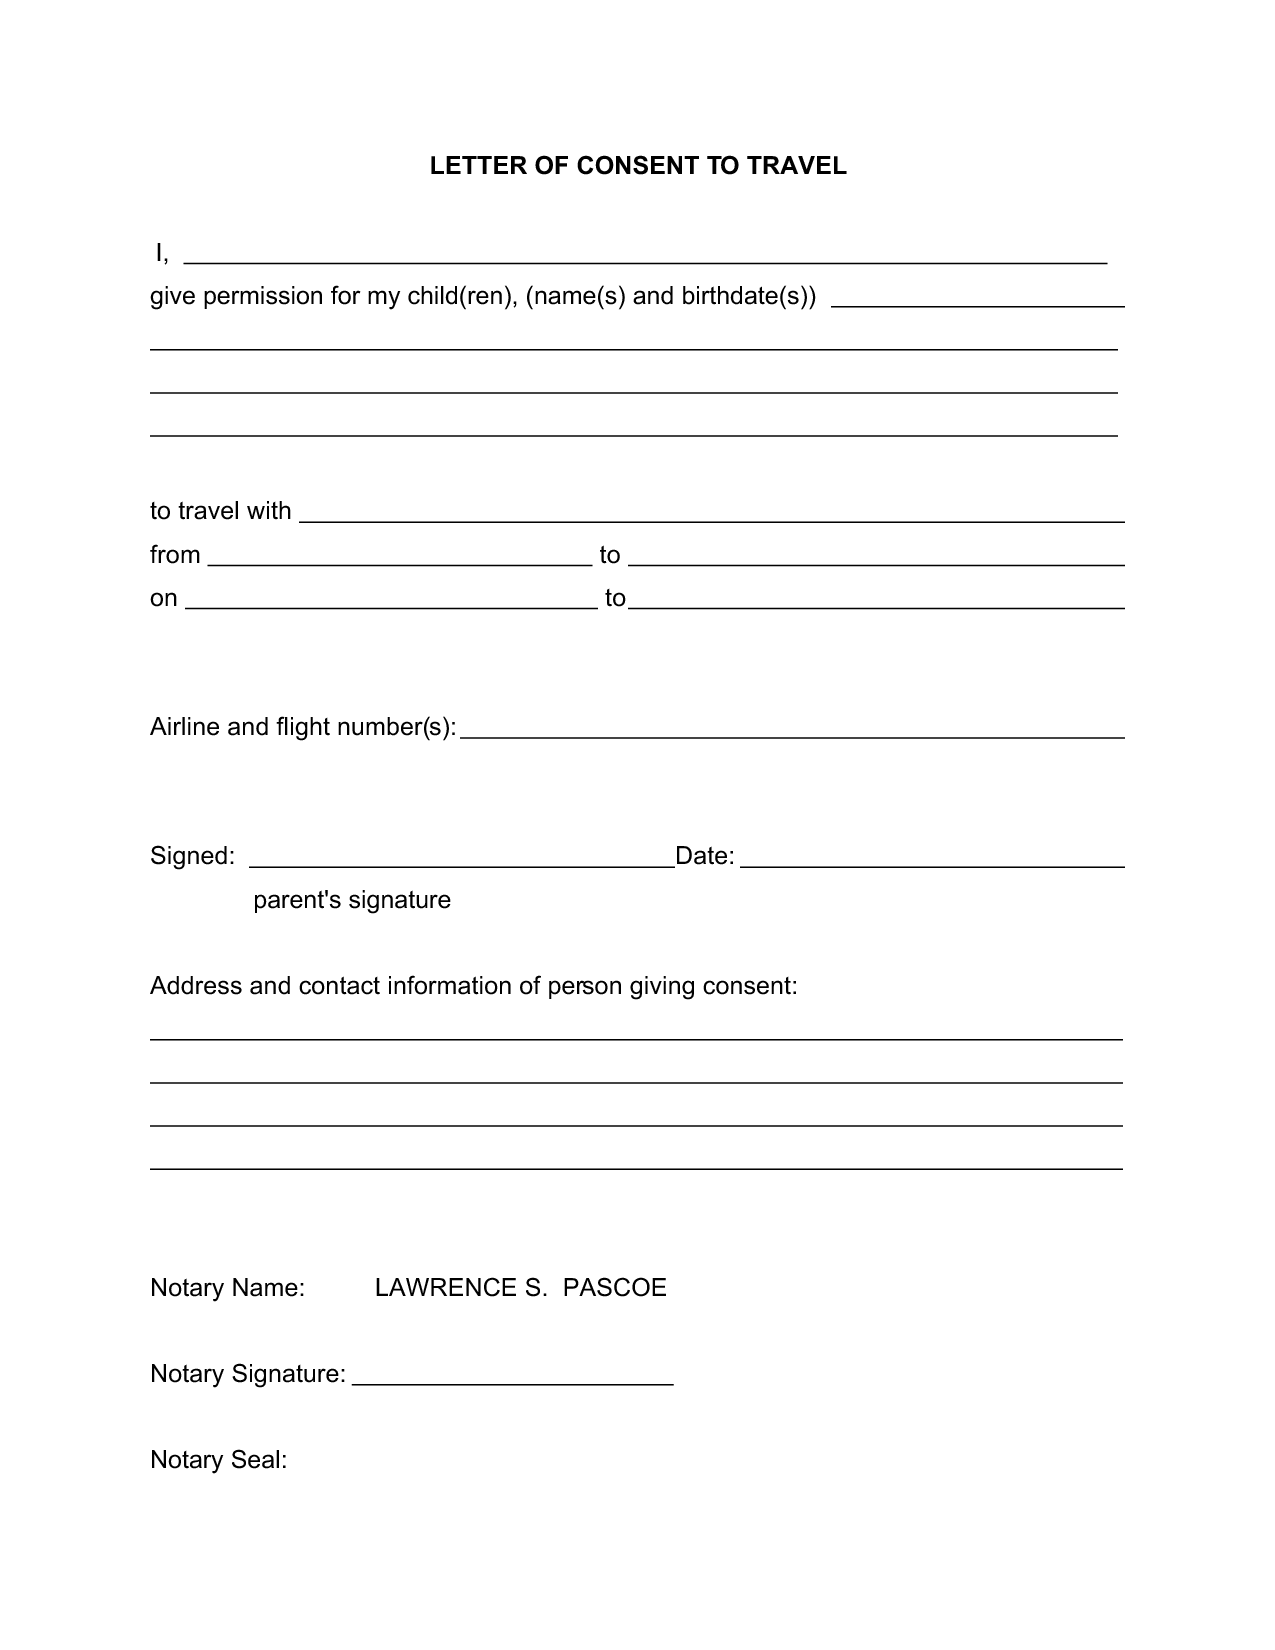 Consent Travel Sample Notarized Letter Template Authorization For Minor Templatezet